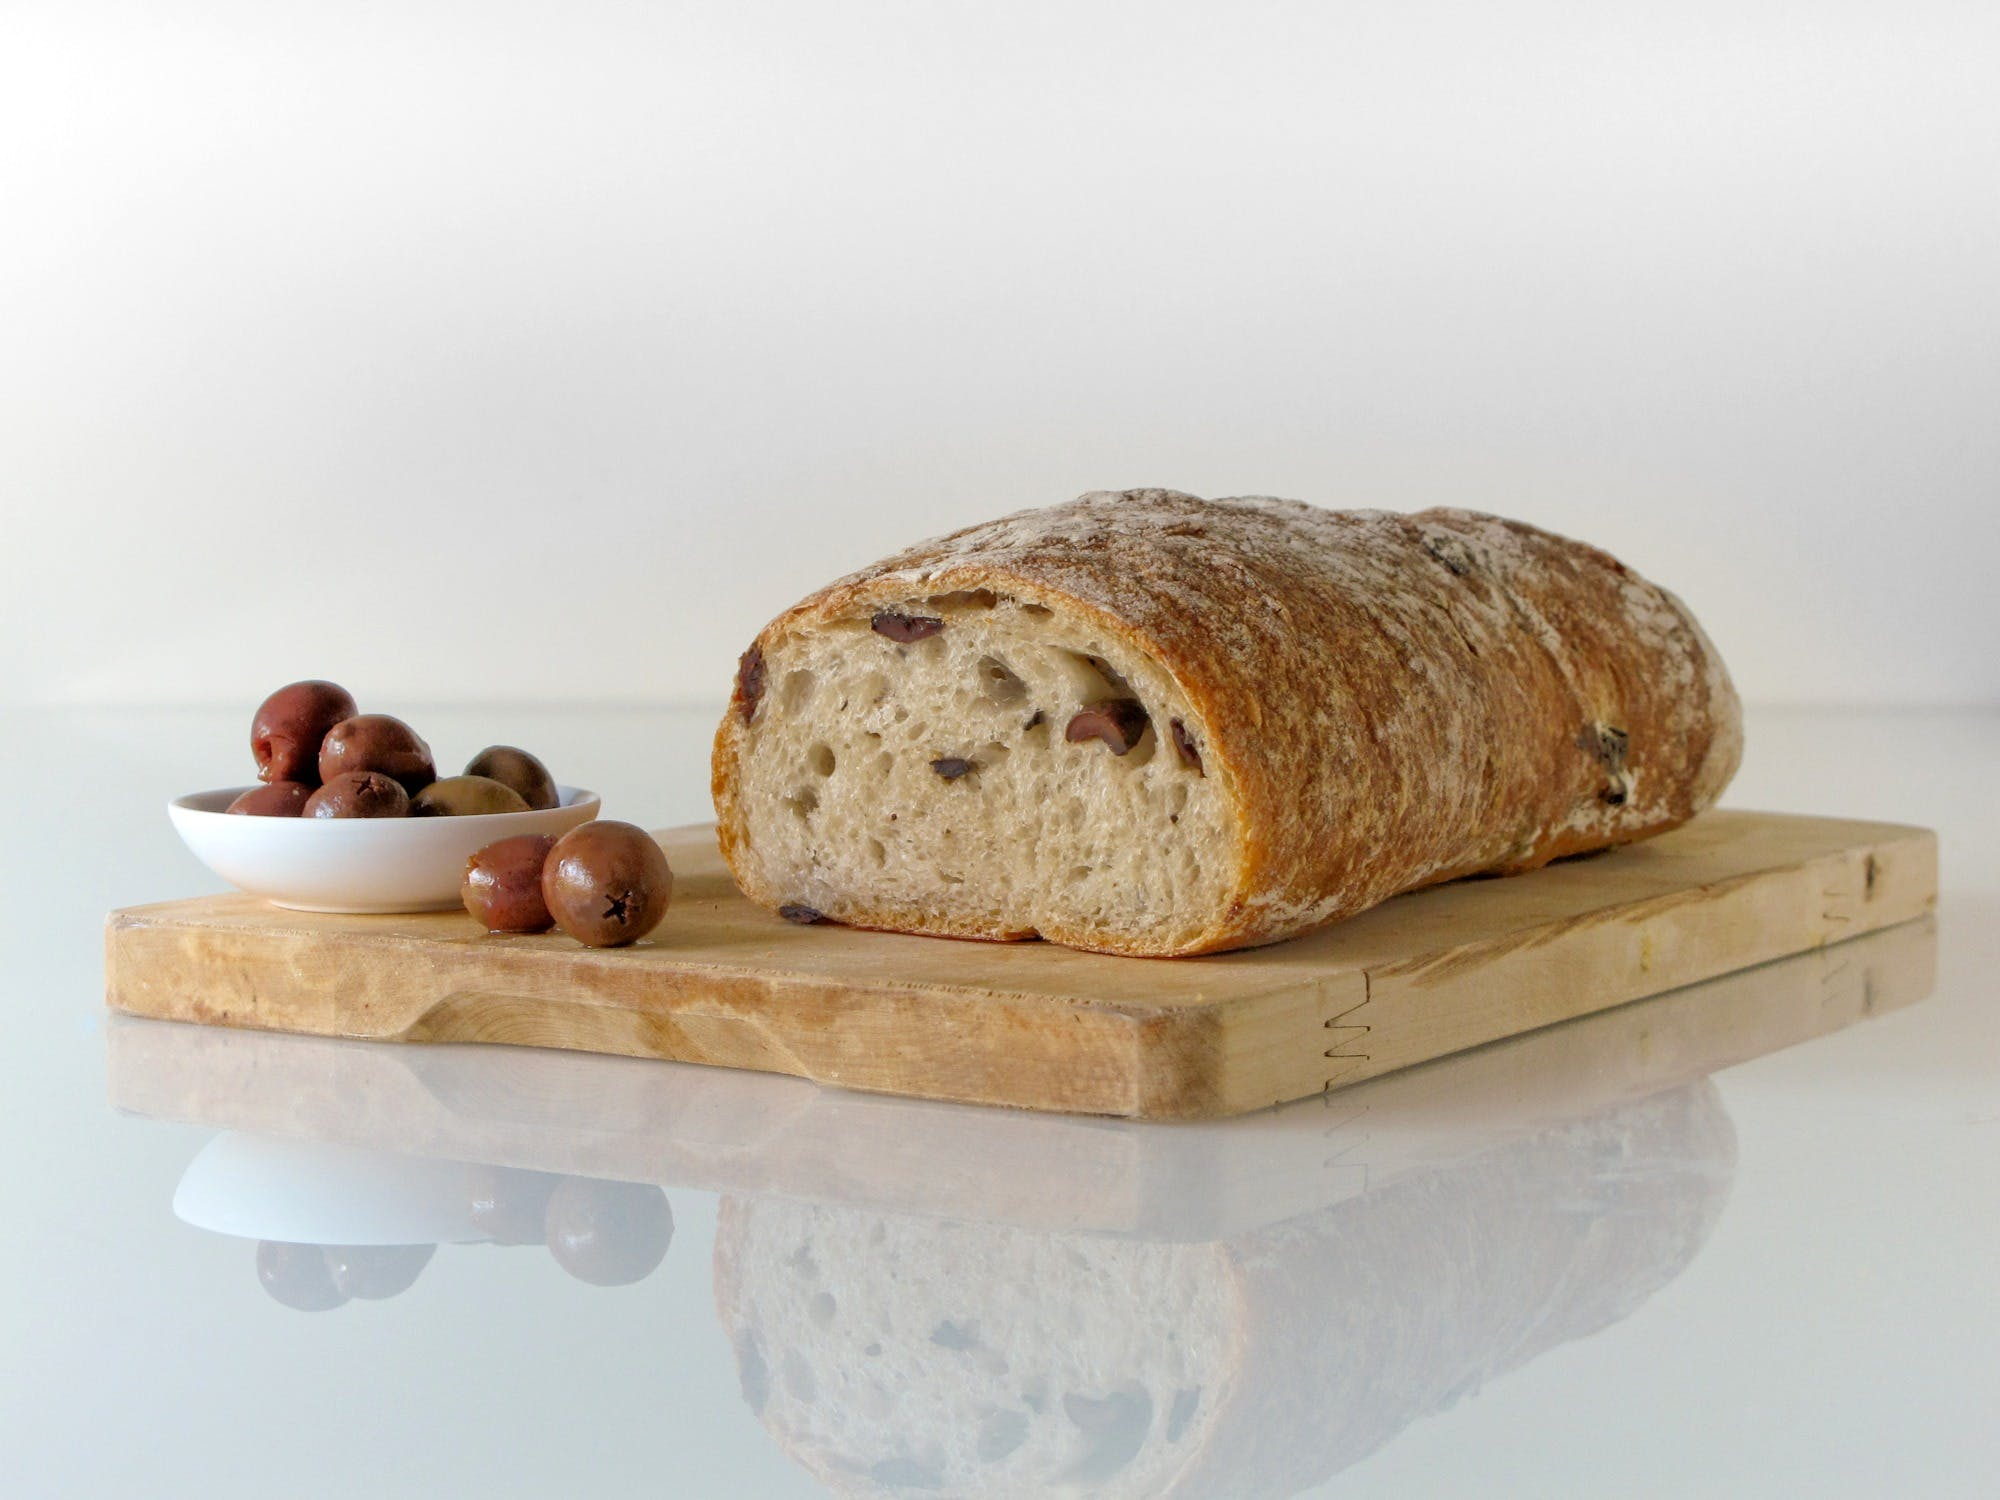 Bread on Top of Brown Wooden Chopping Board